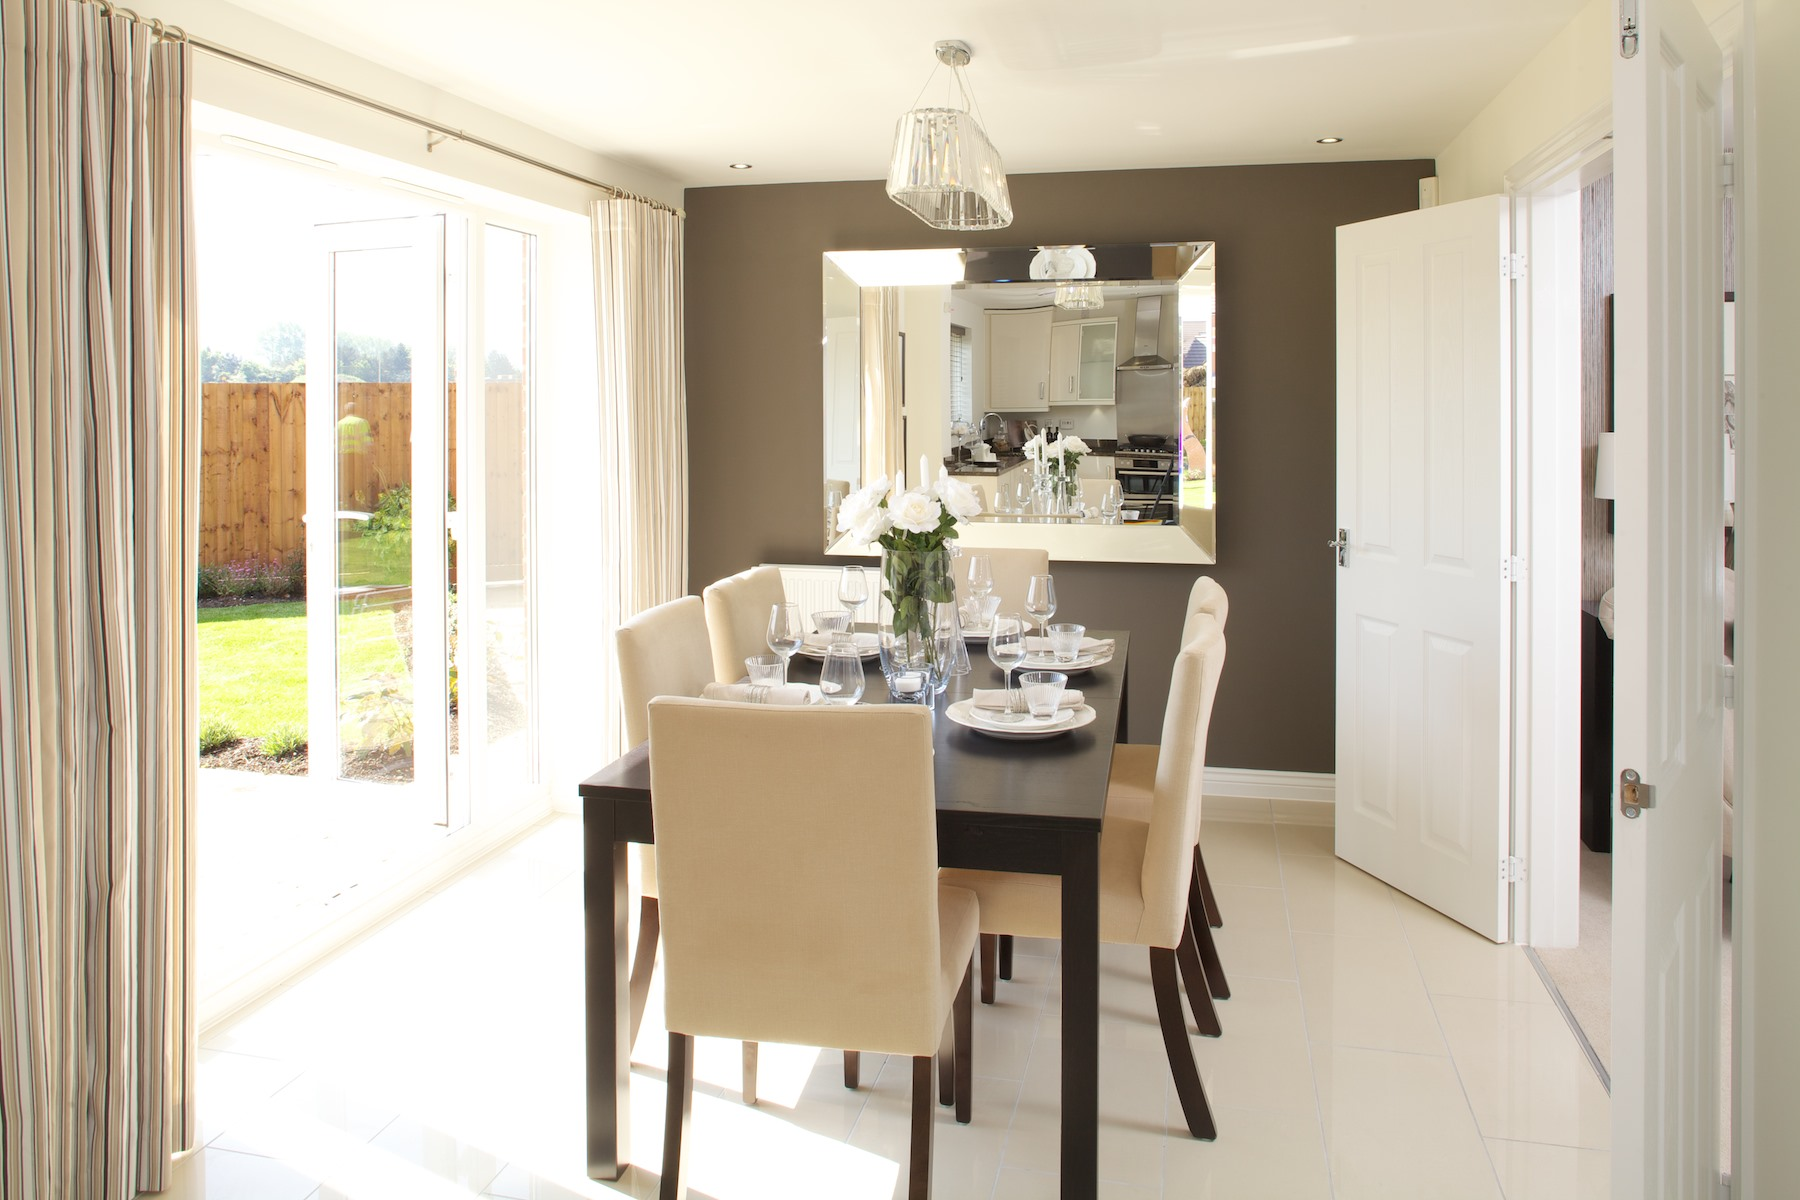 Kings Copse show home - Dining area